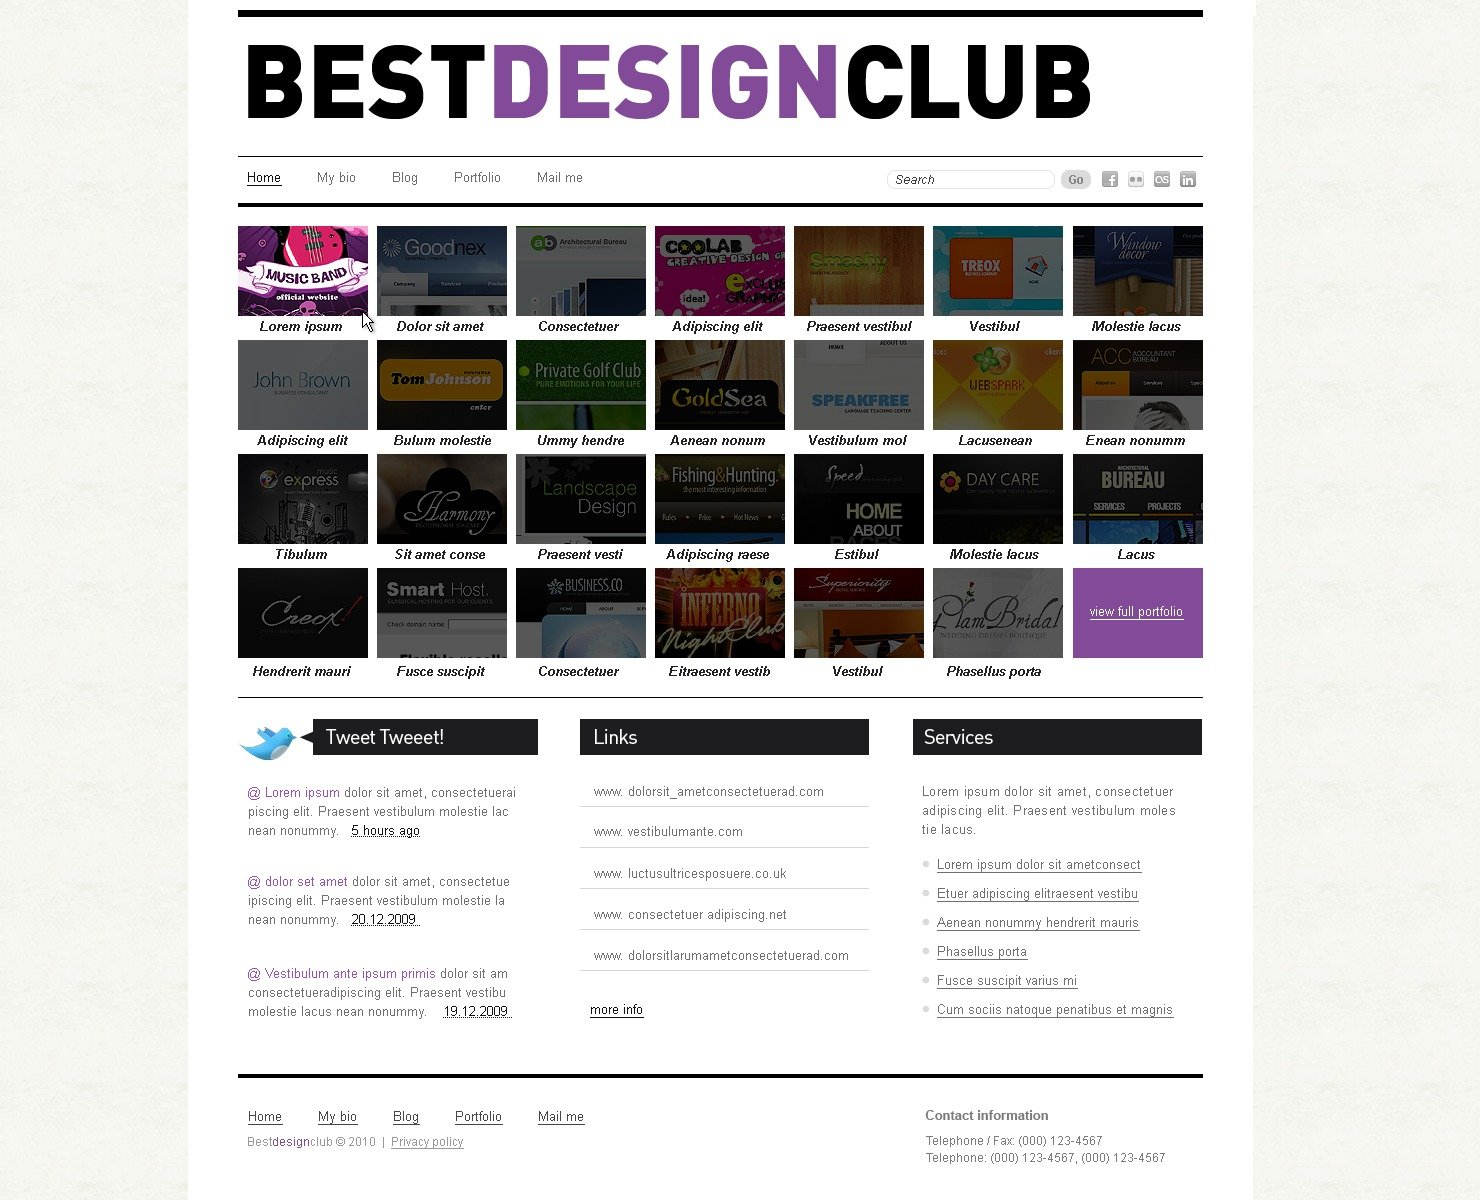 The Best Design Club Studio PSD Design 54271, one of the best PSD templates of its kind (web design, flash 8, wide, jquery), also known as best design club studio PSD template, creative art gallery PSD template, artists PSD template, painting PSD template, painters PSD template, web development PSD template, webmasters PSD template, designers PSD template, internet PSD template, www PSD template, sites PSD template, web design PSD template, webpage PSD template, personal portfolio and related with best design club studio, creative art gallery, artists, painting, painters, web development, webmasters, designers, internet, www, sites, web design, webpage, personal portfolio, etc.